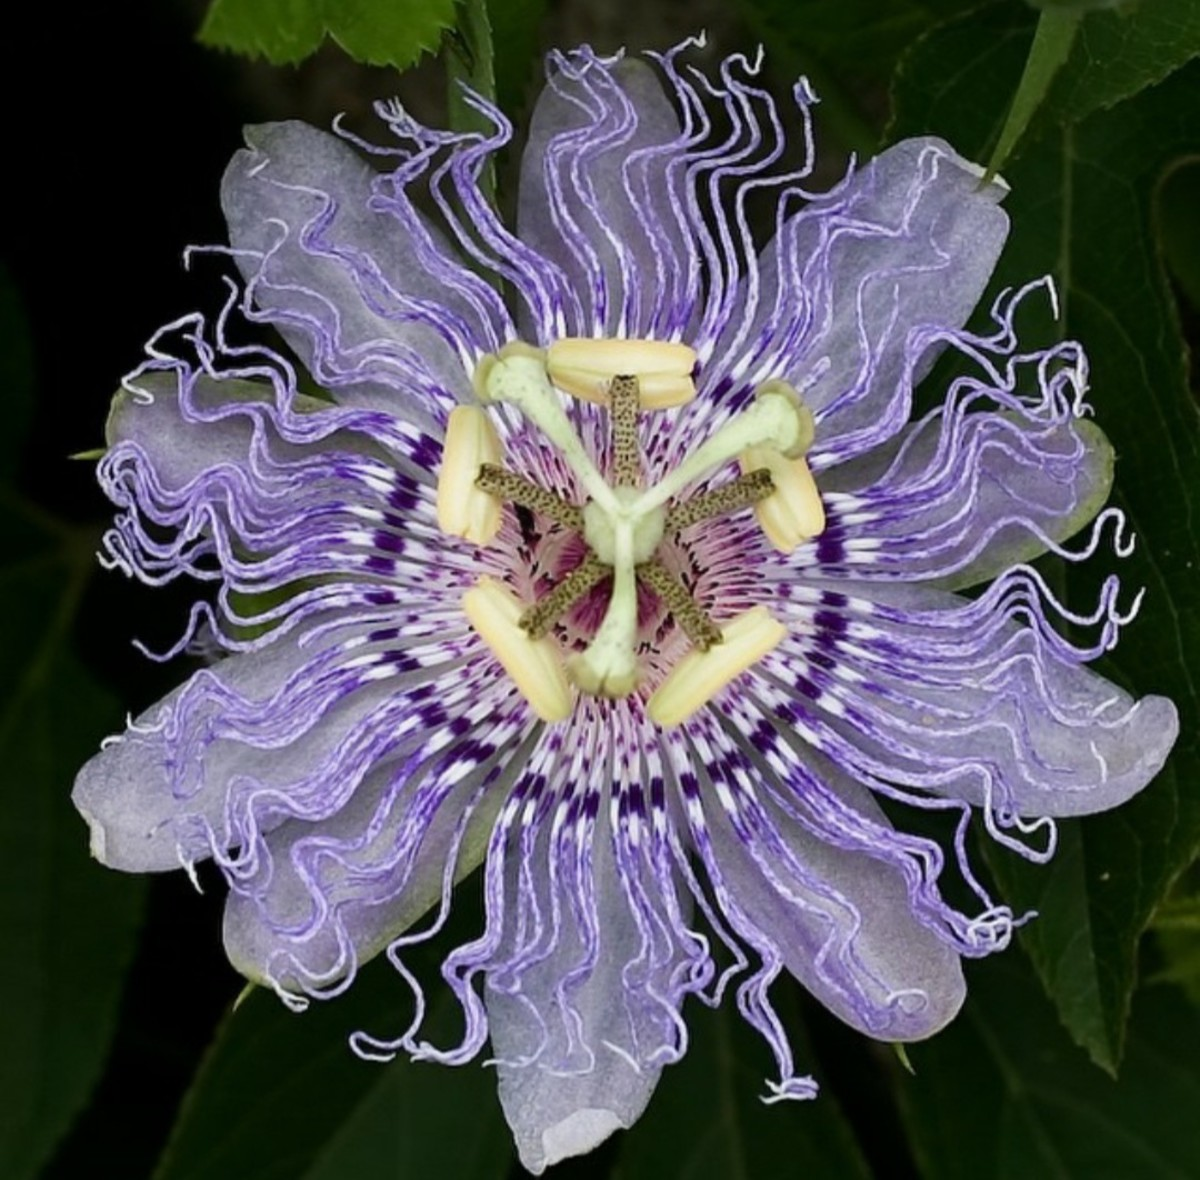 Violet passionflower